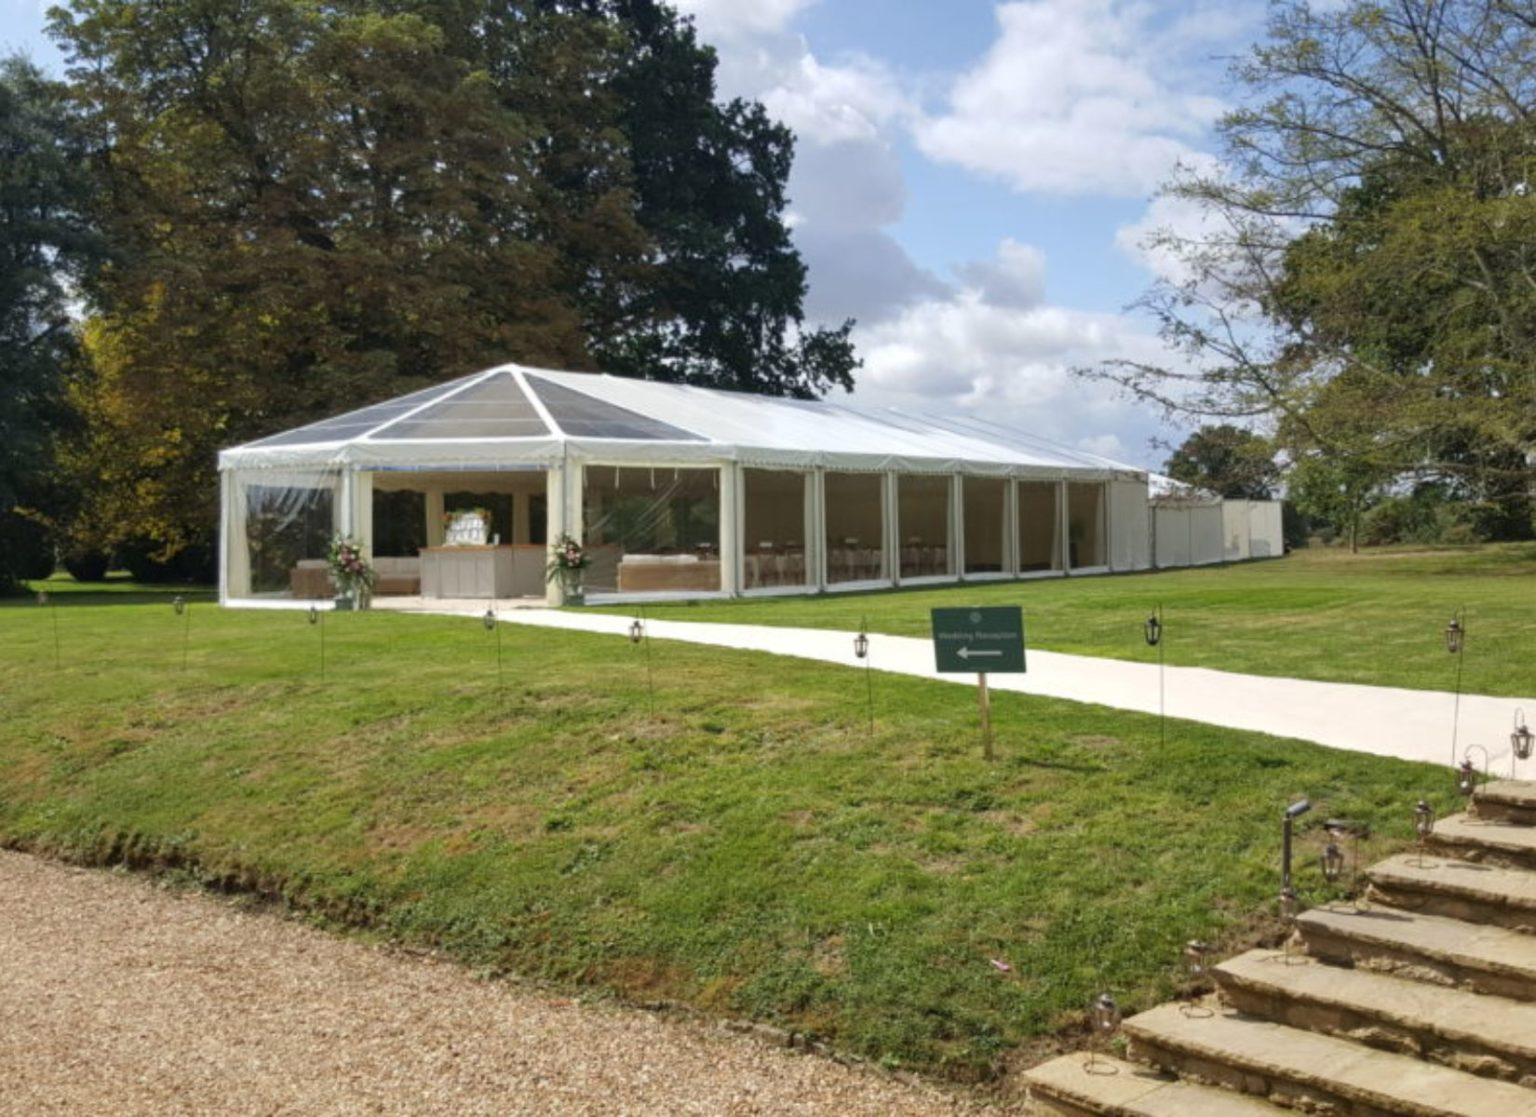 Clearspan Hex-end Wedding Marquee